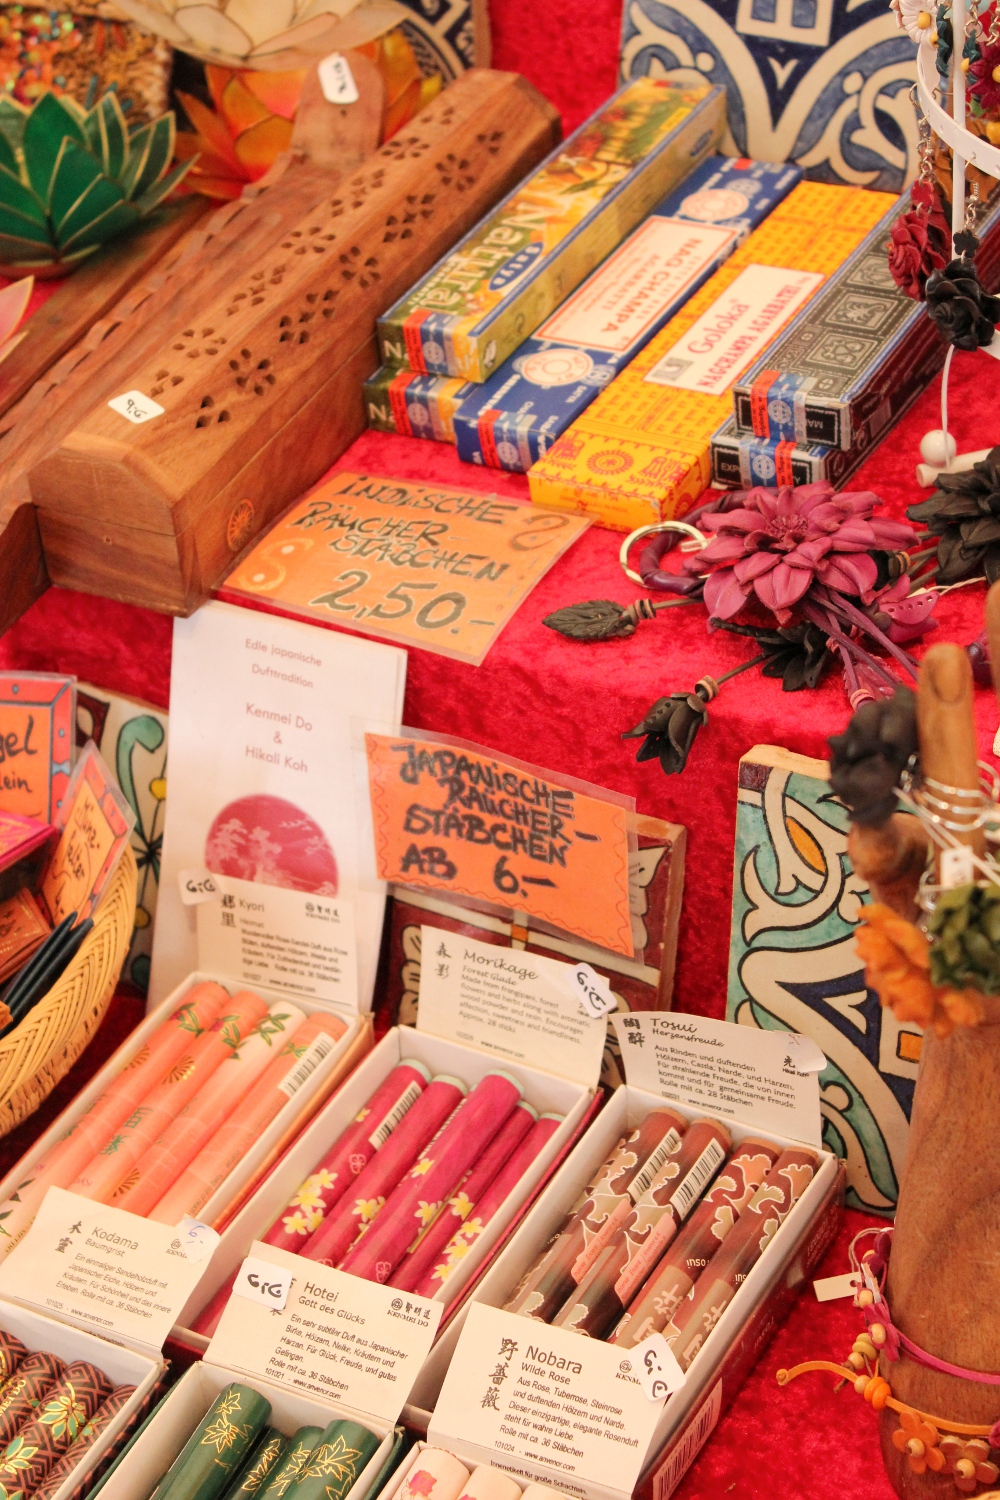 Variety of Incense sticks sold at a market